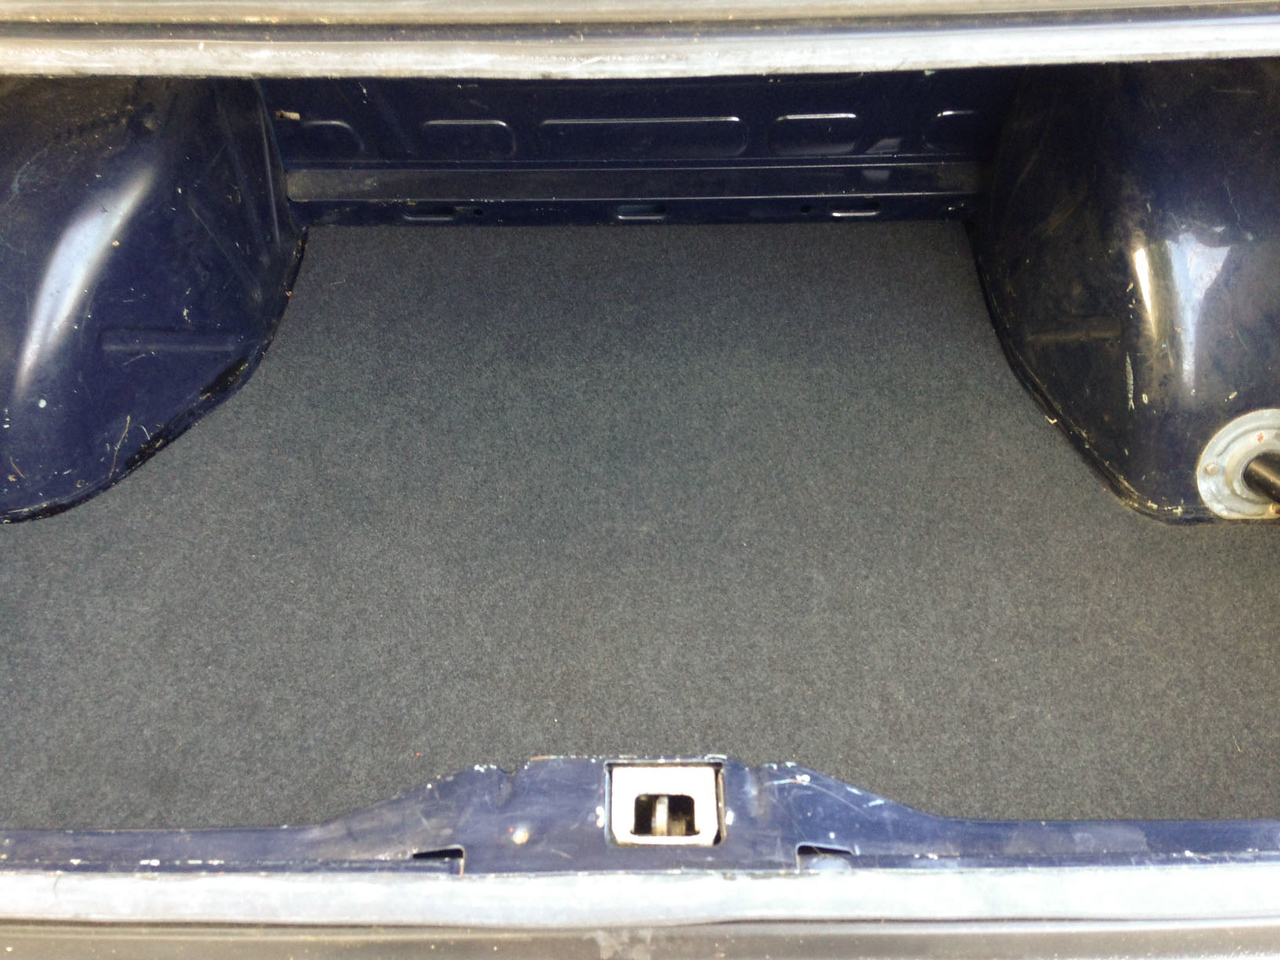 New trunk seals, carpet, and spare tire deck.